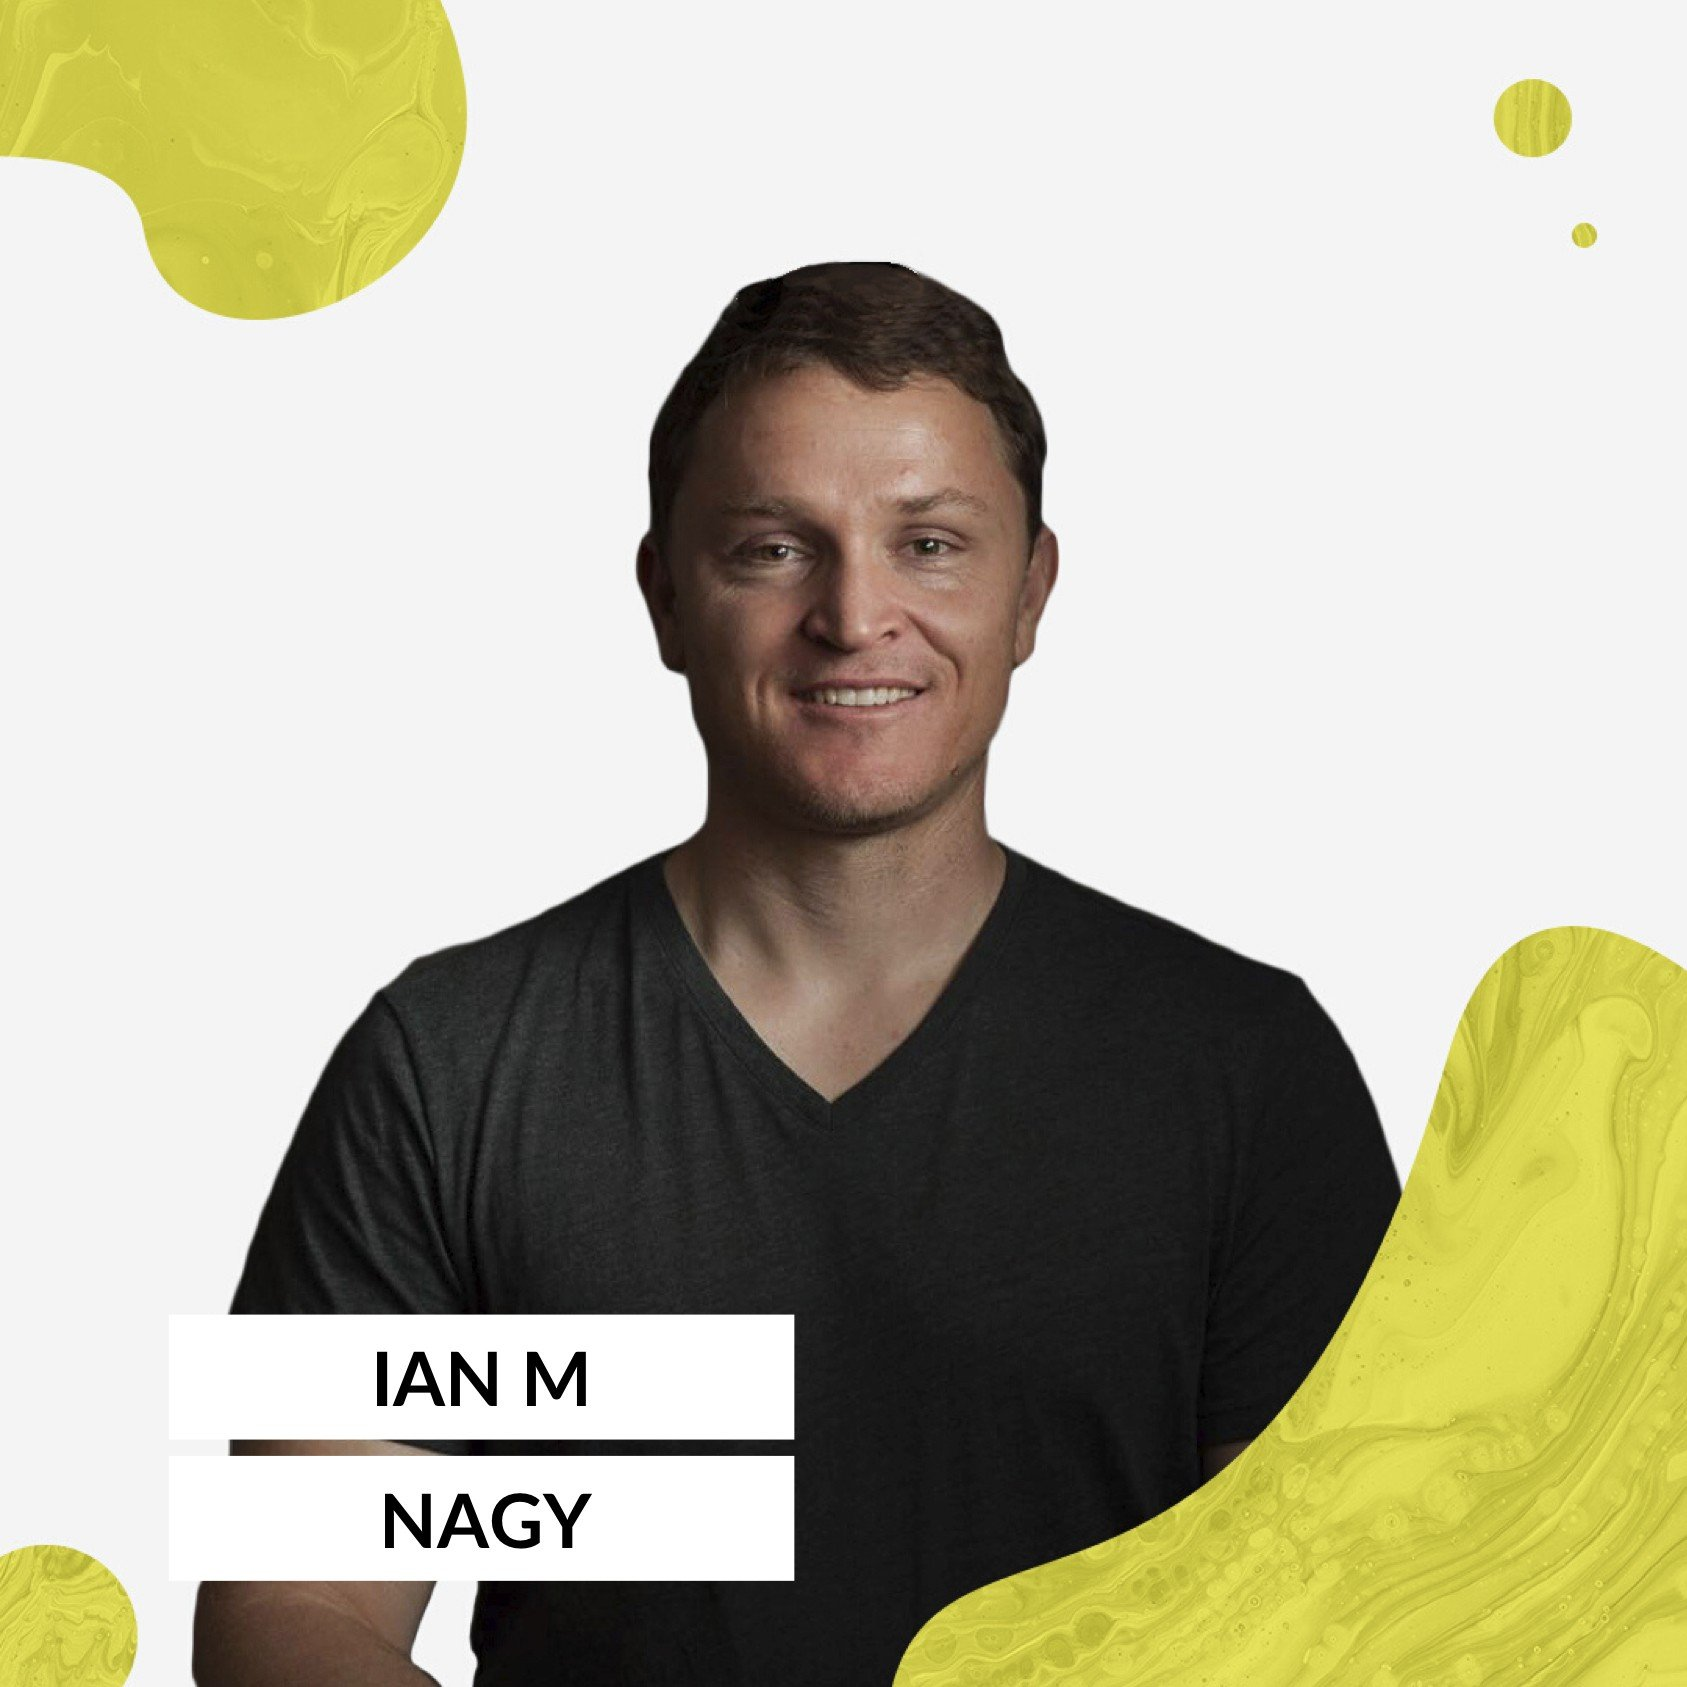 #9 Ian M Nagy – Meditation, Direct Response Copywriting, working at Golden Hippo & YouTube ads